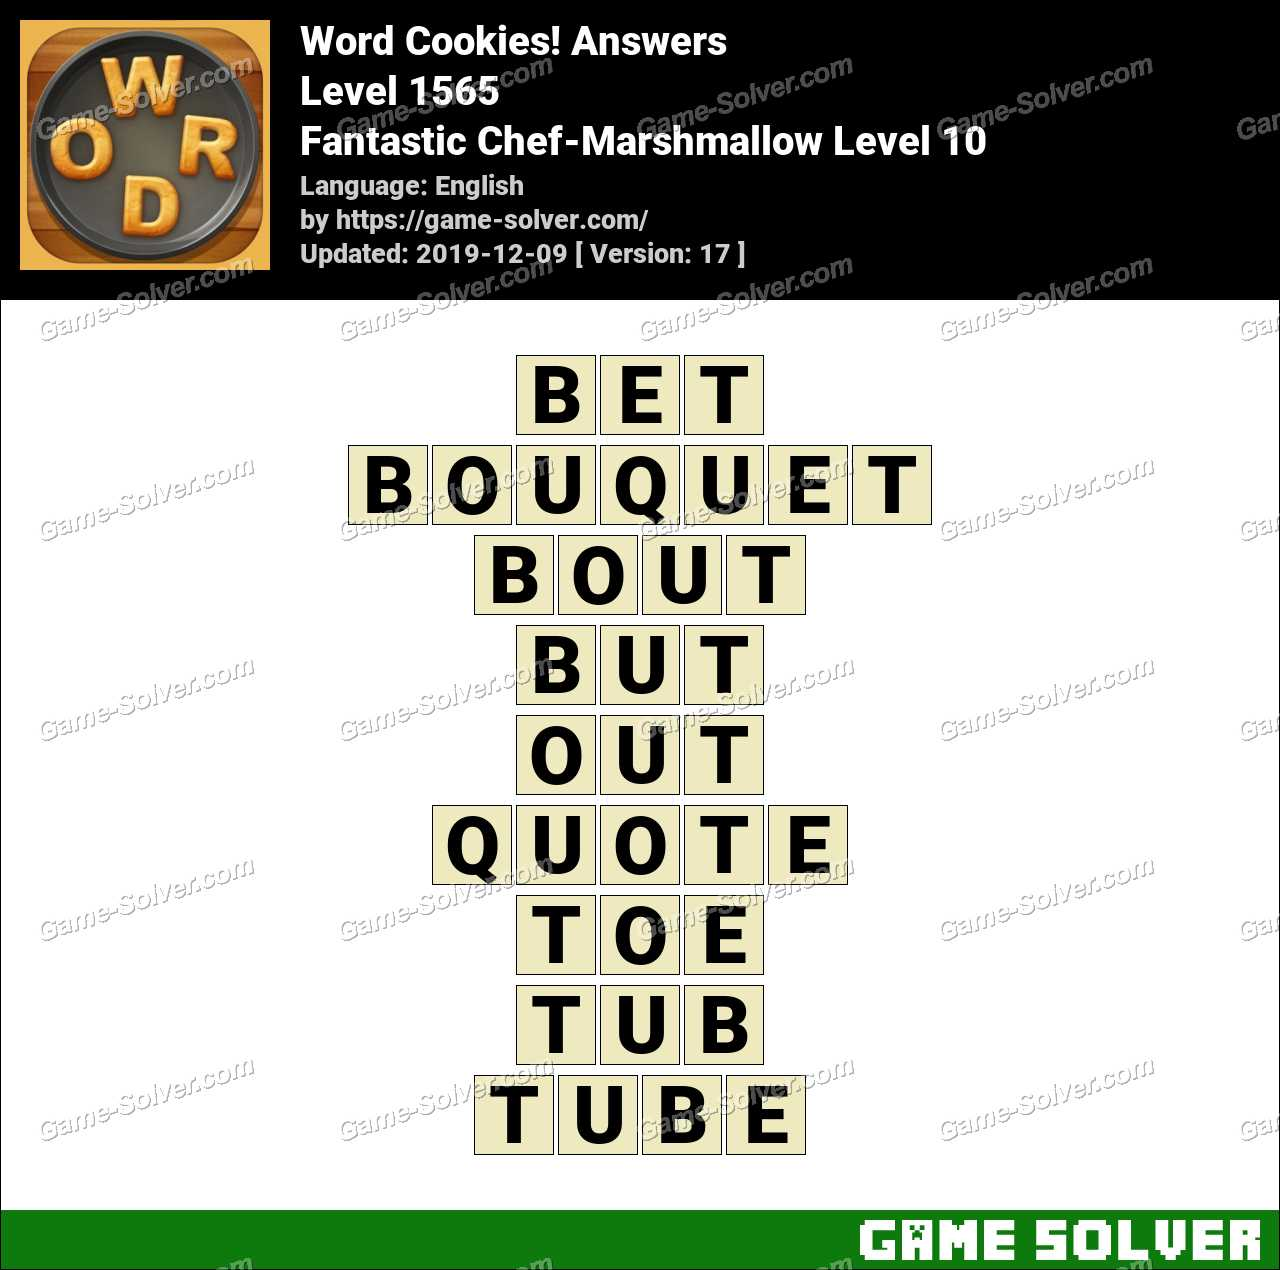 Word Cookies Fantastic Chef-Marshmallow Level 10 Answers